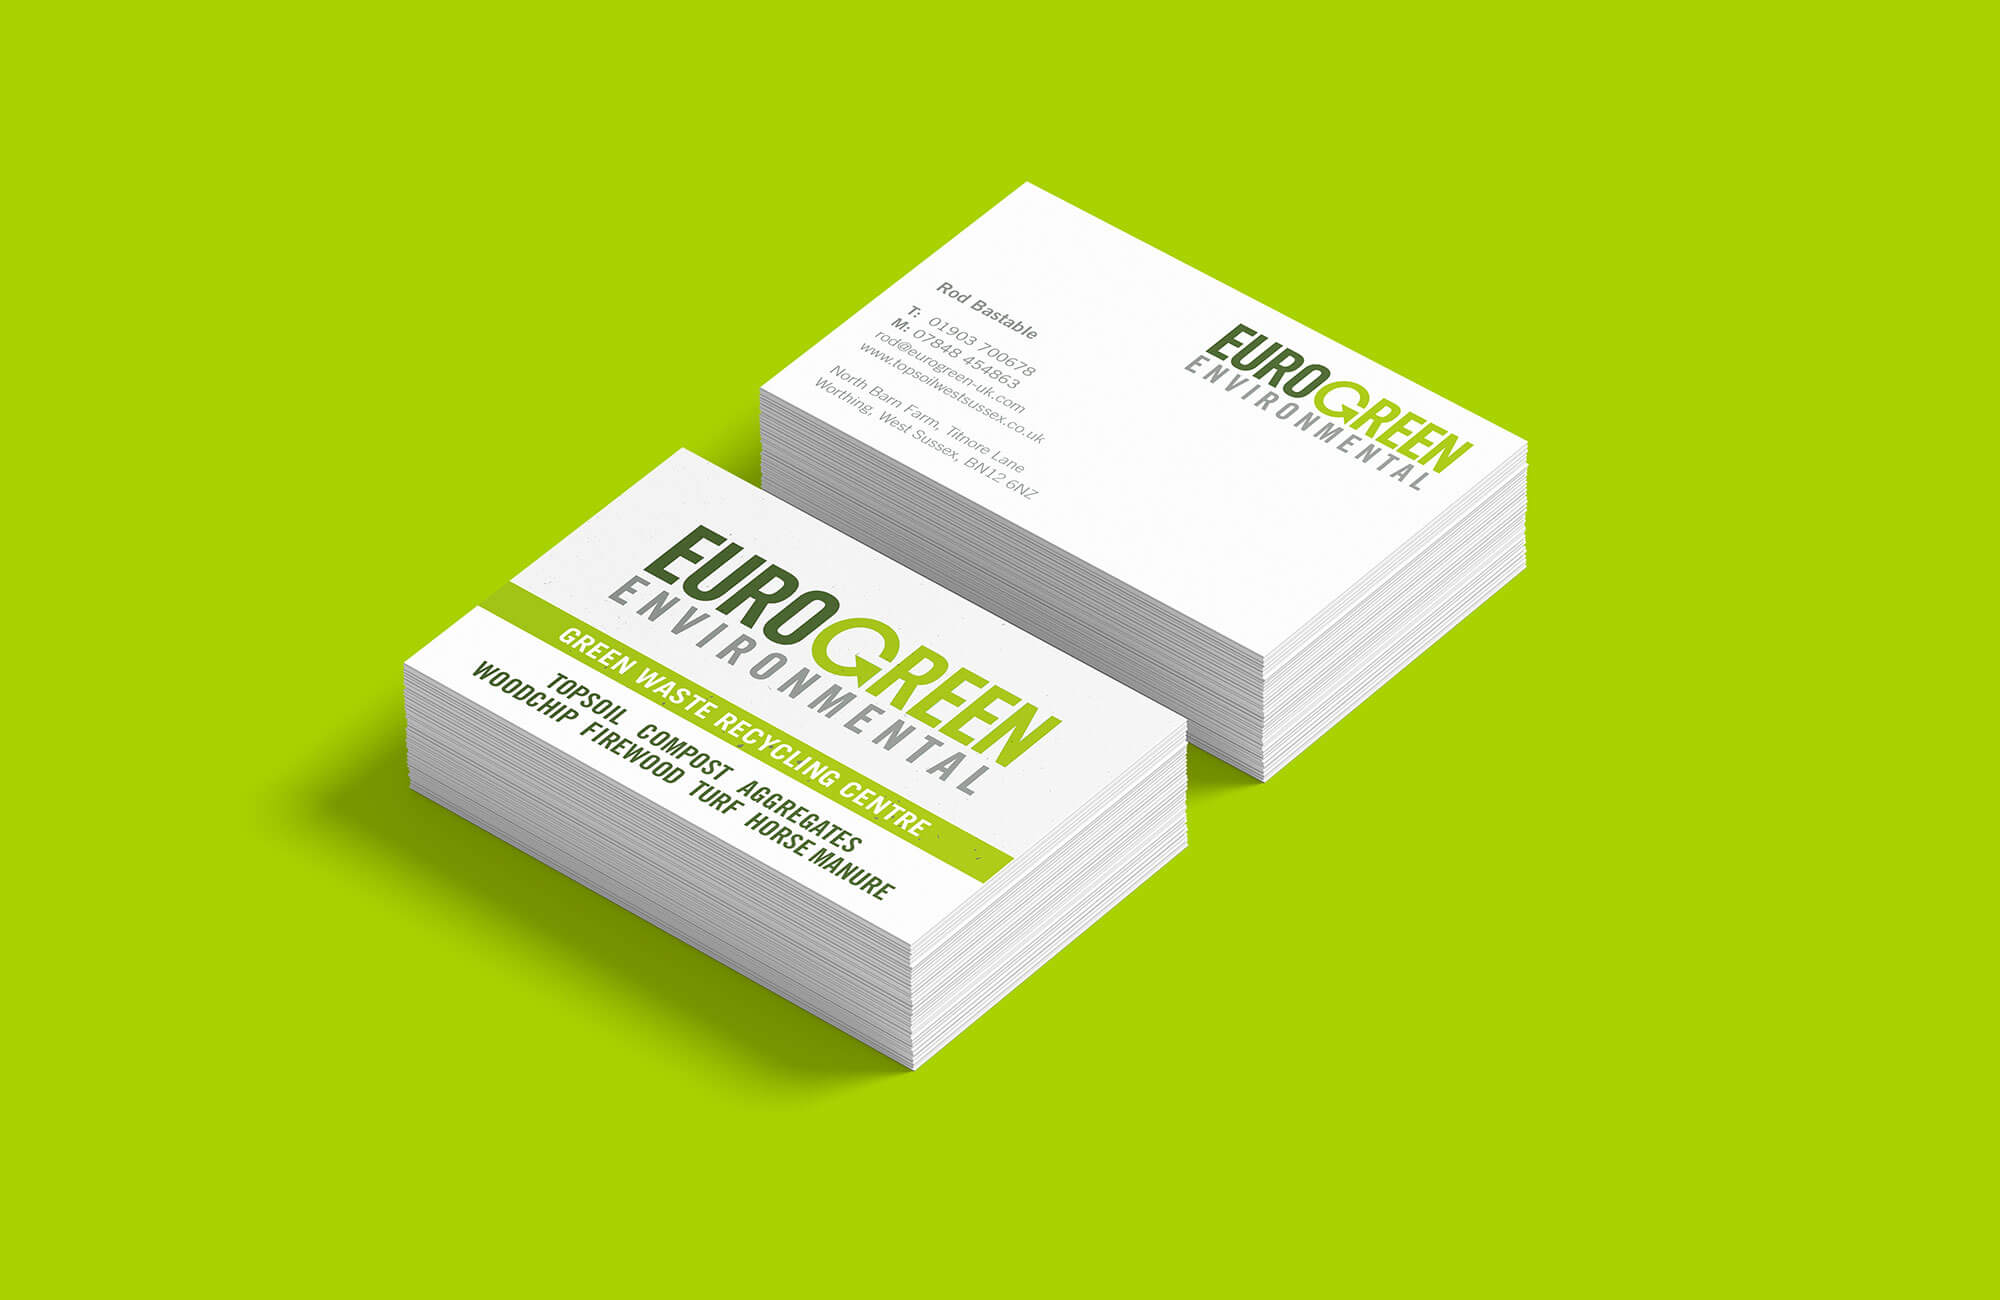 Eurogreen Business Cards Design and Print